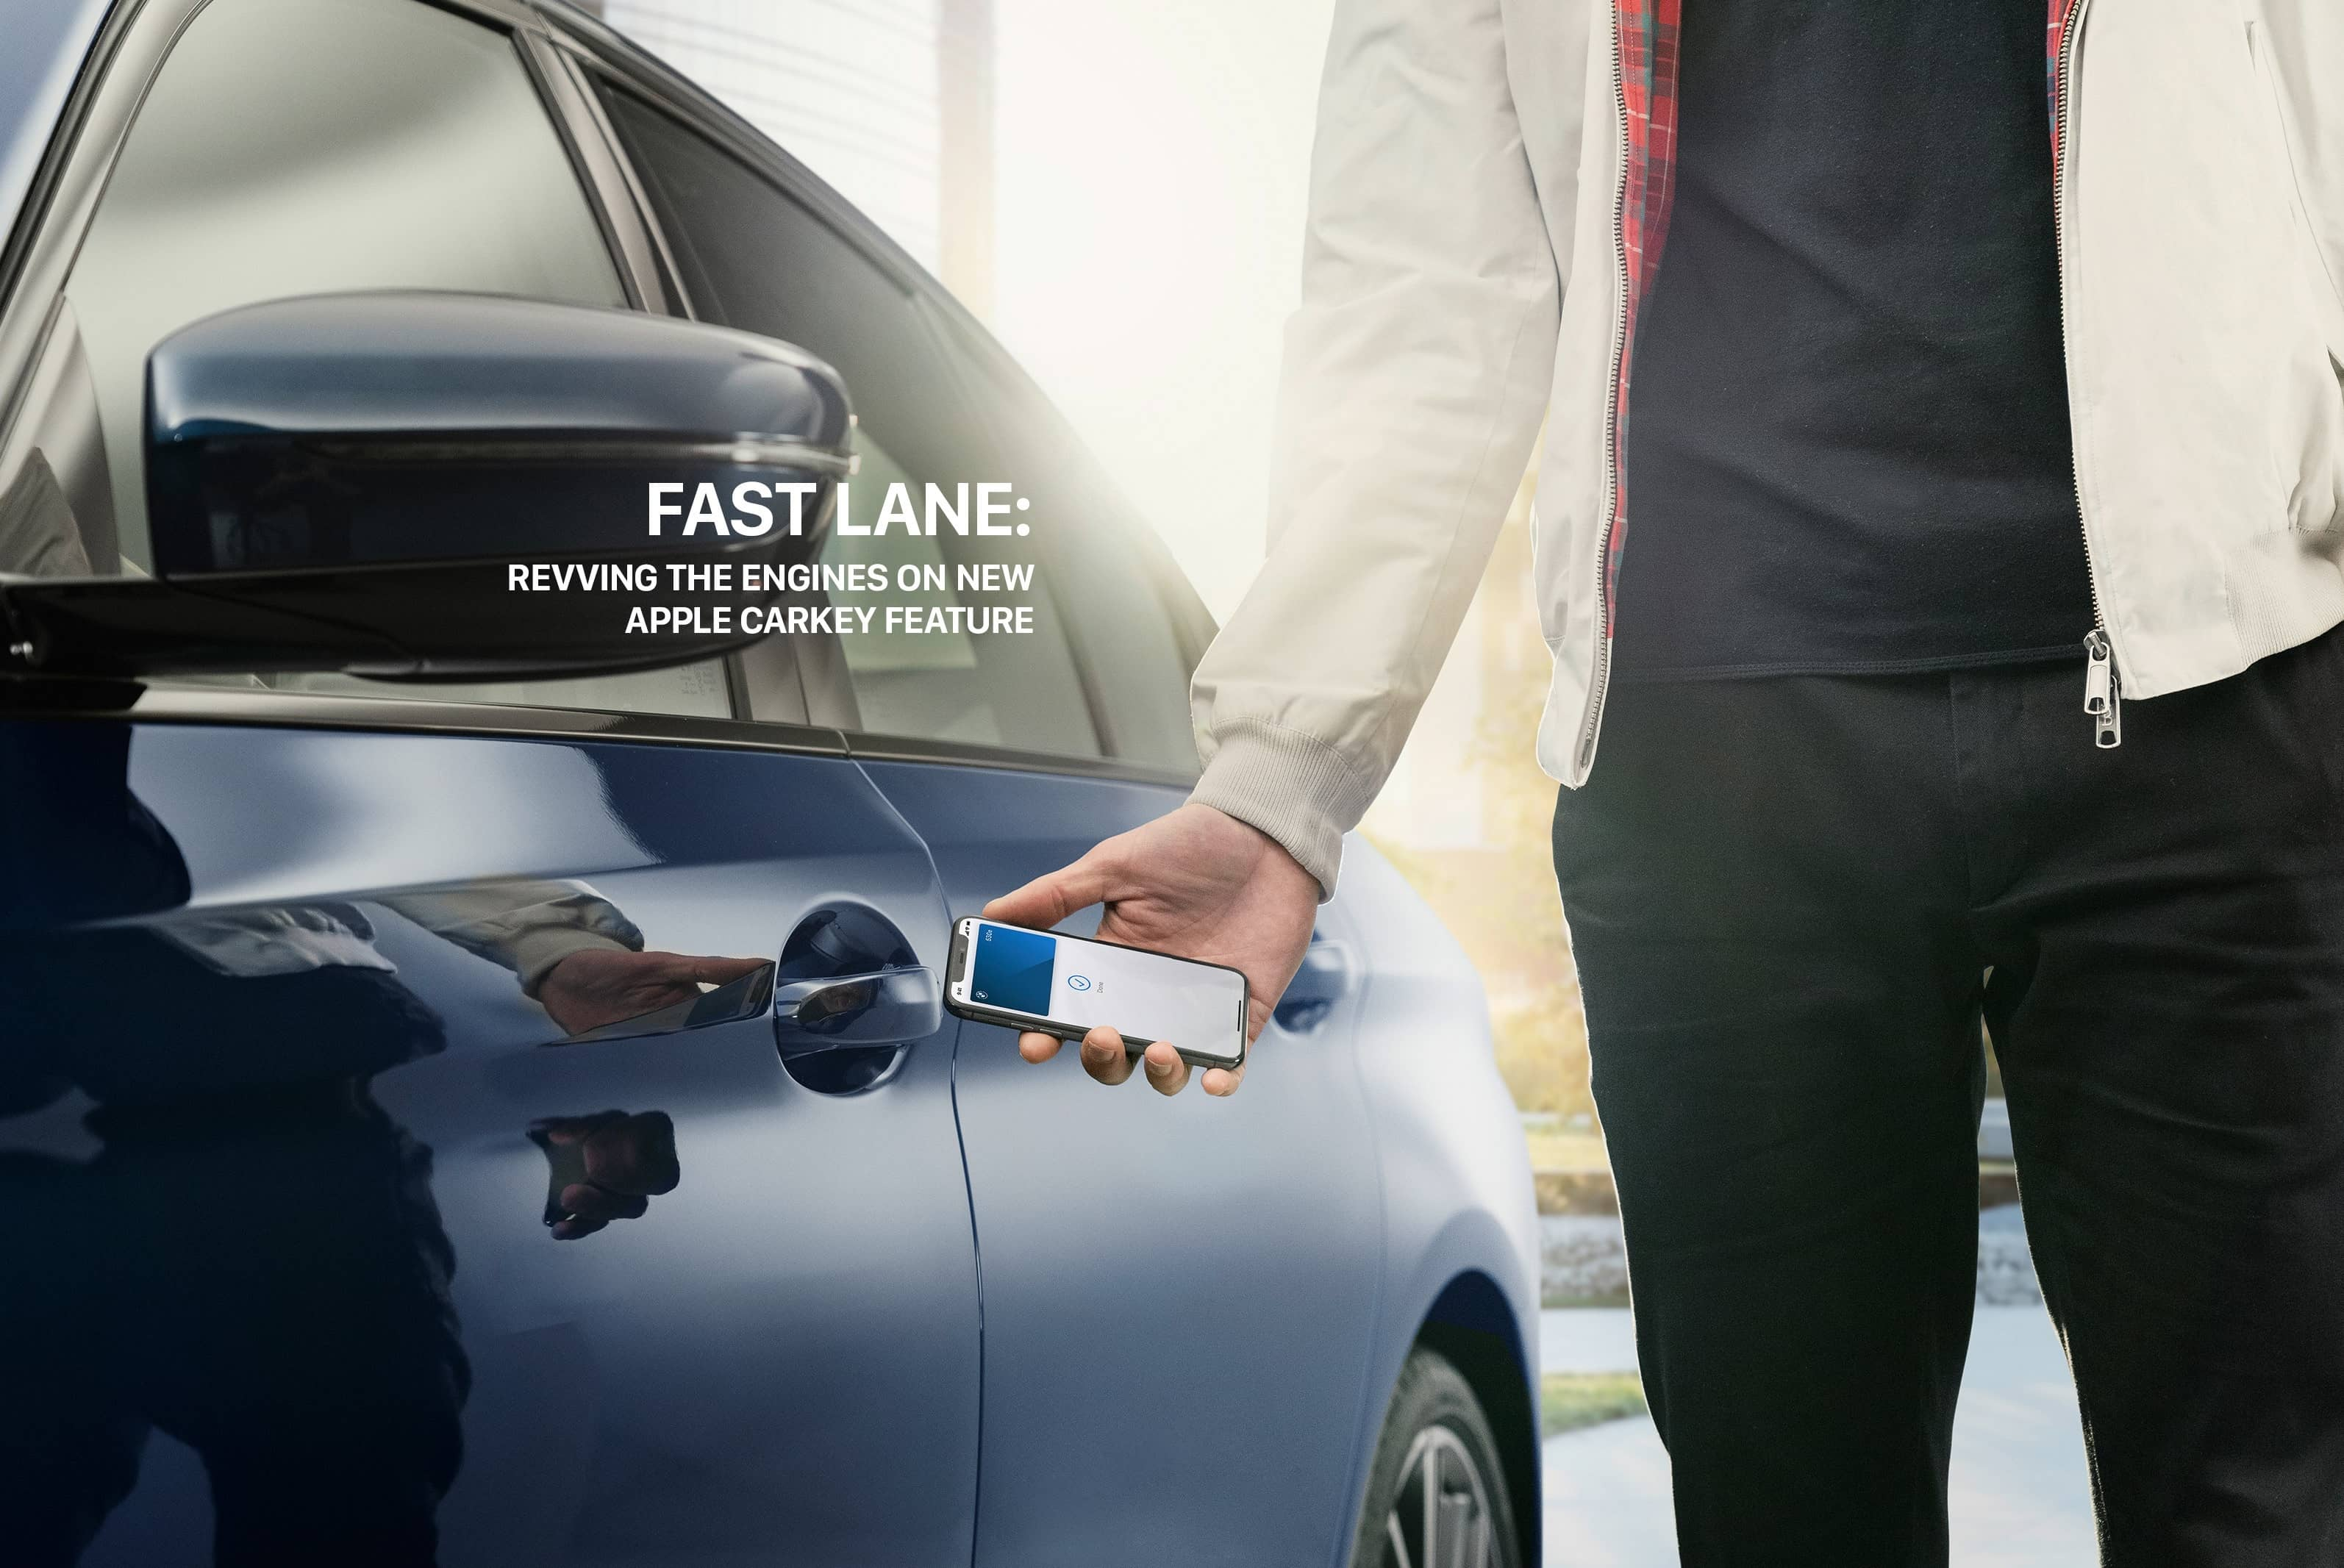 FAST LANE: REVVING THE ENGINES ON NEW APPLE CARKEY FEATURE